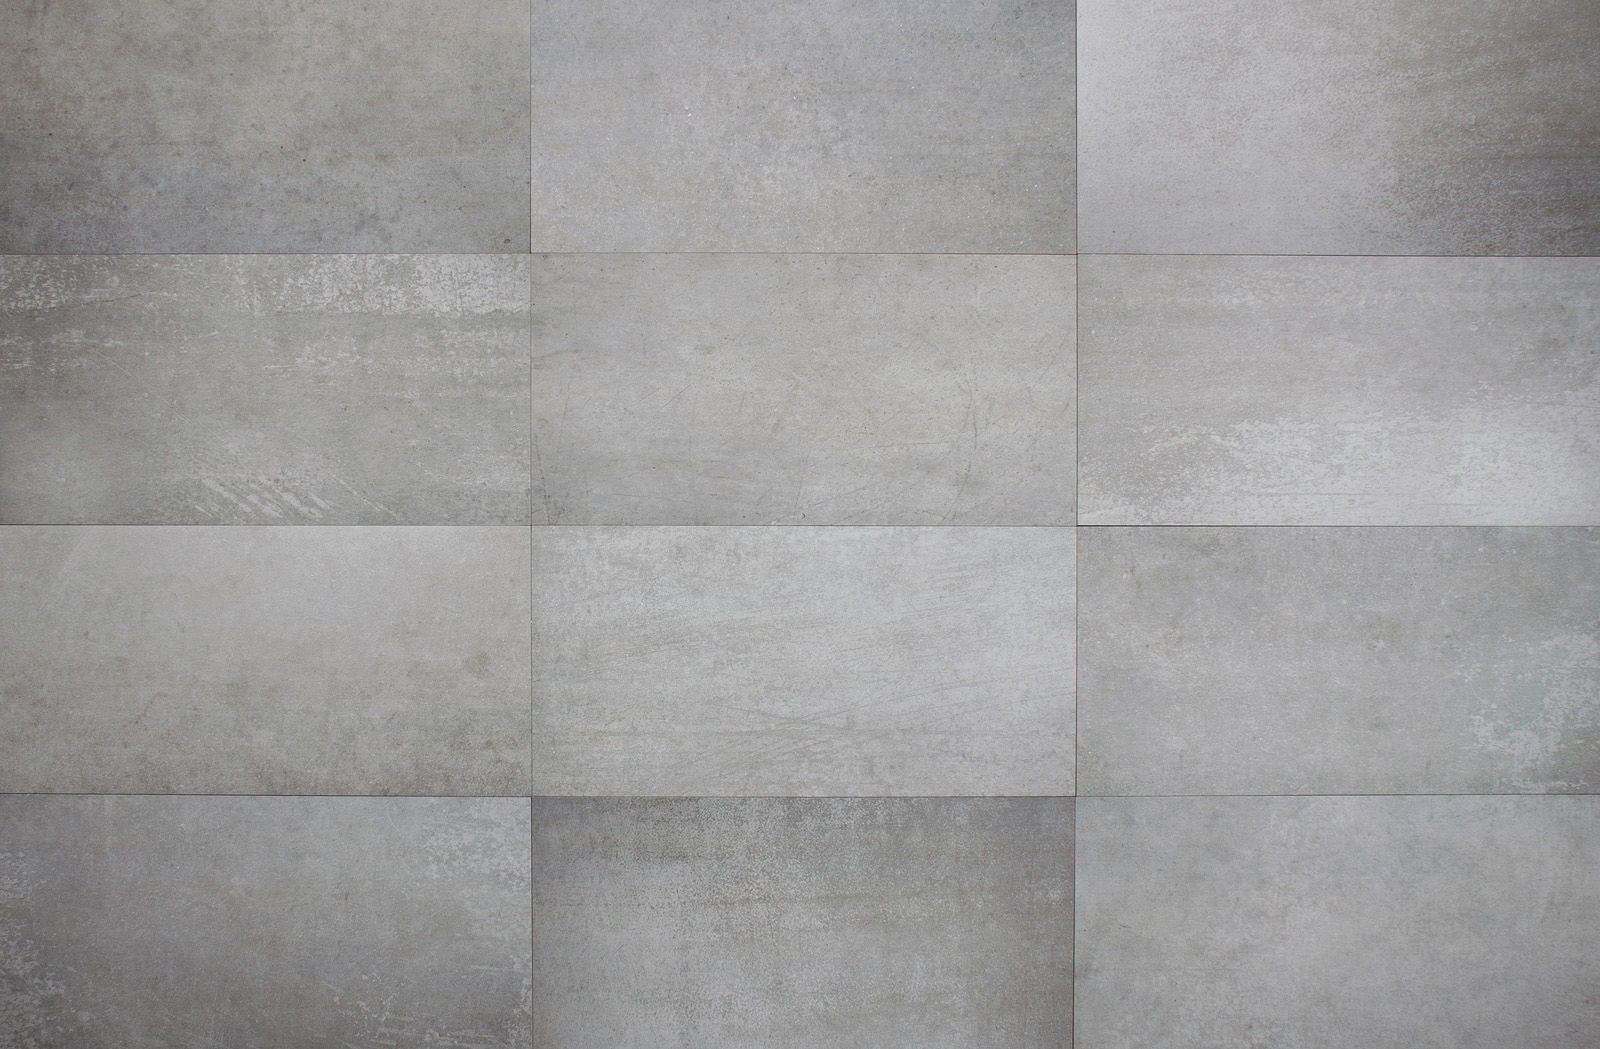 Indoor tile wall for floors ceramic concrete sphinx tiles indoor tile wall for floors ceramic dailygadgetfo Choice Image